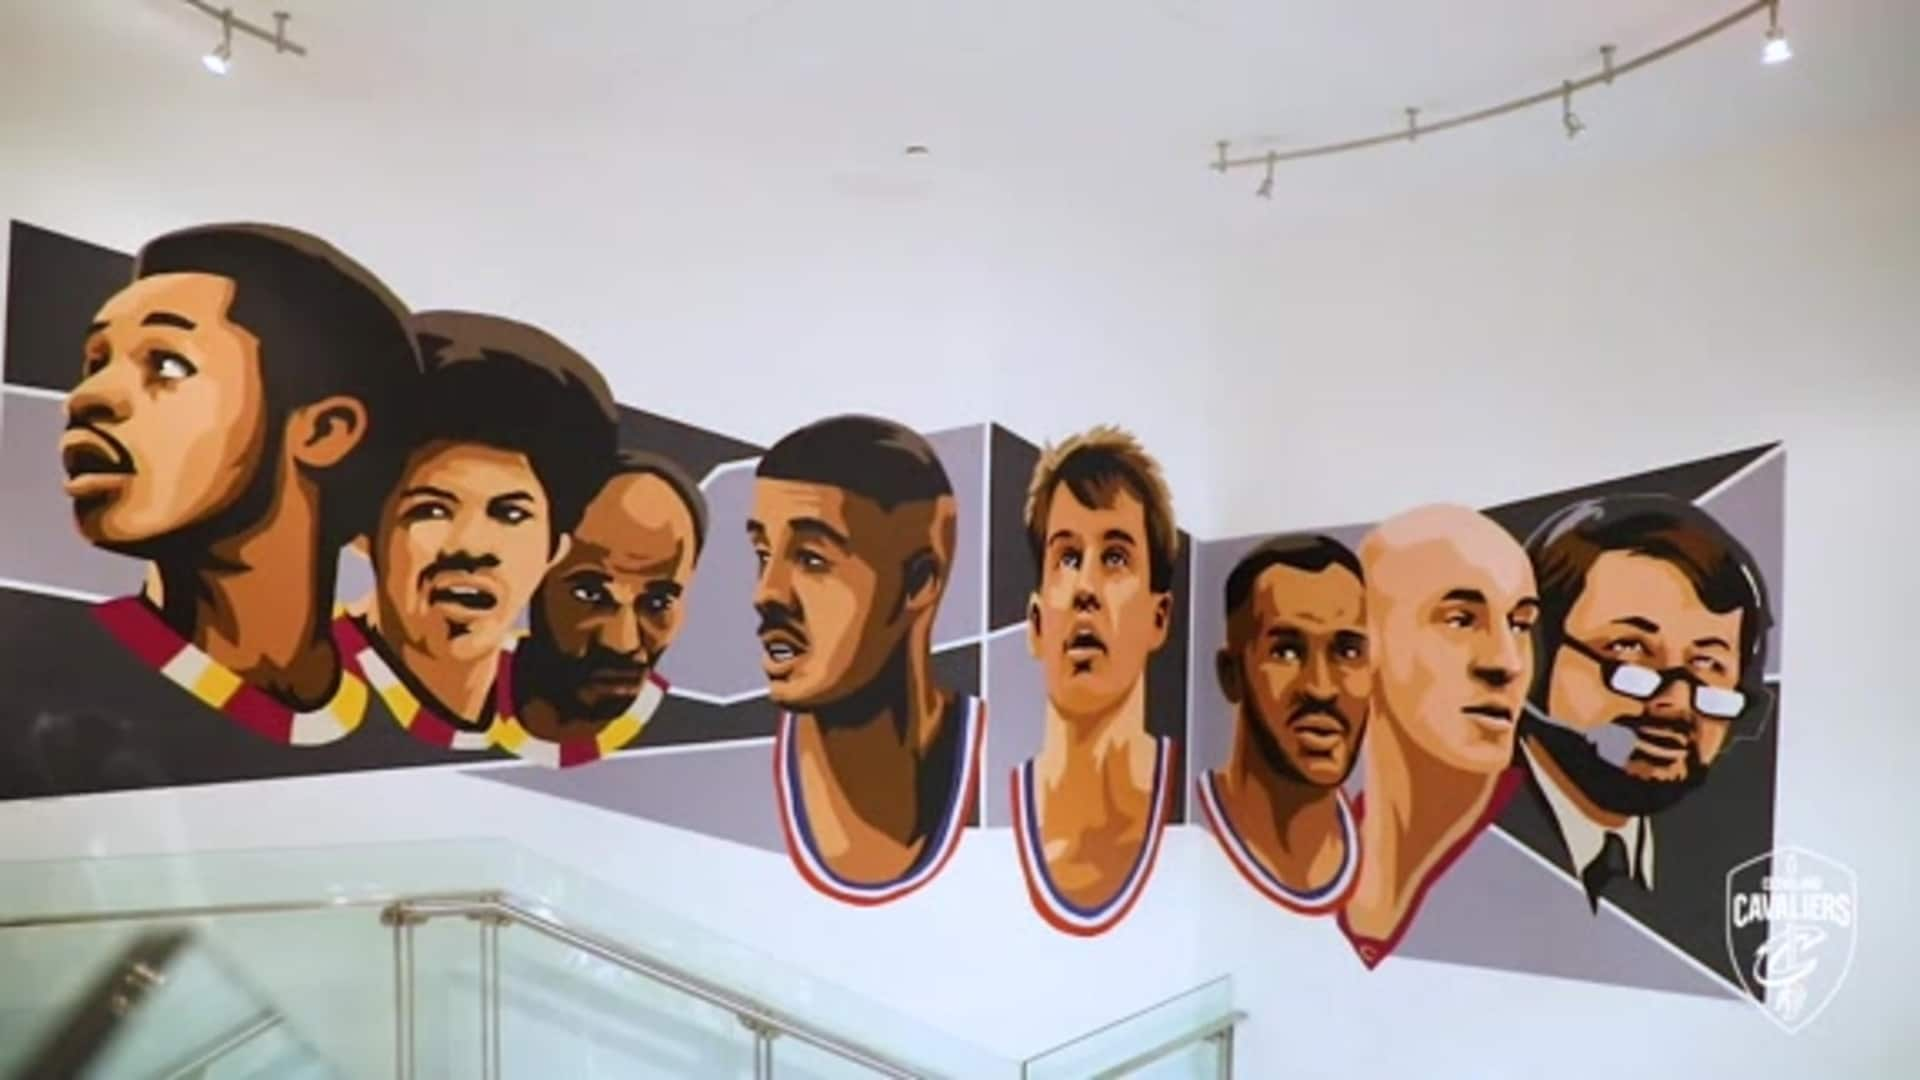 Artists Complete Cavs Legends Mural at Rocket Mortgage FieldHouse